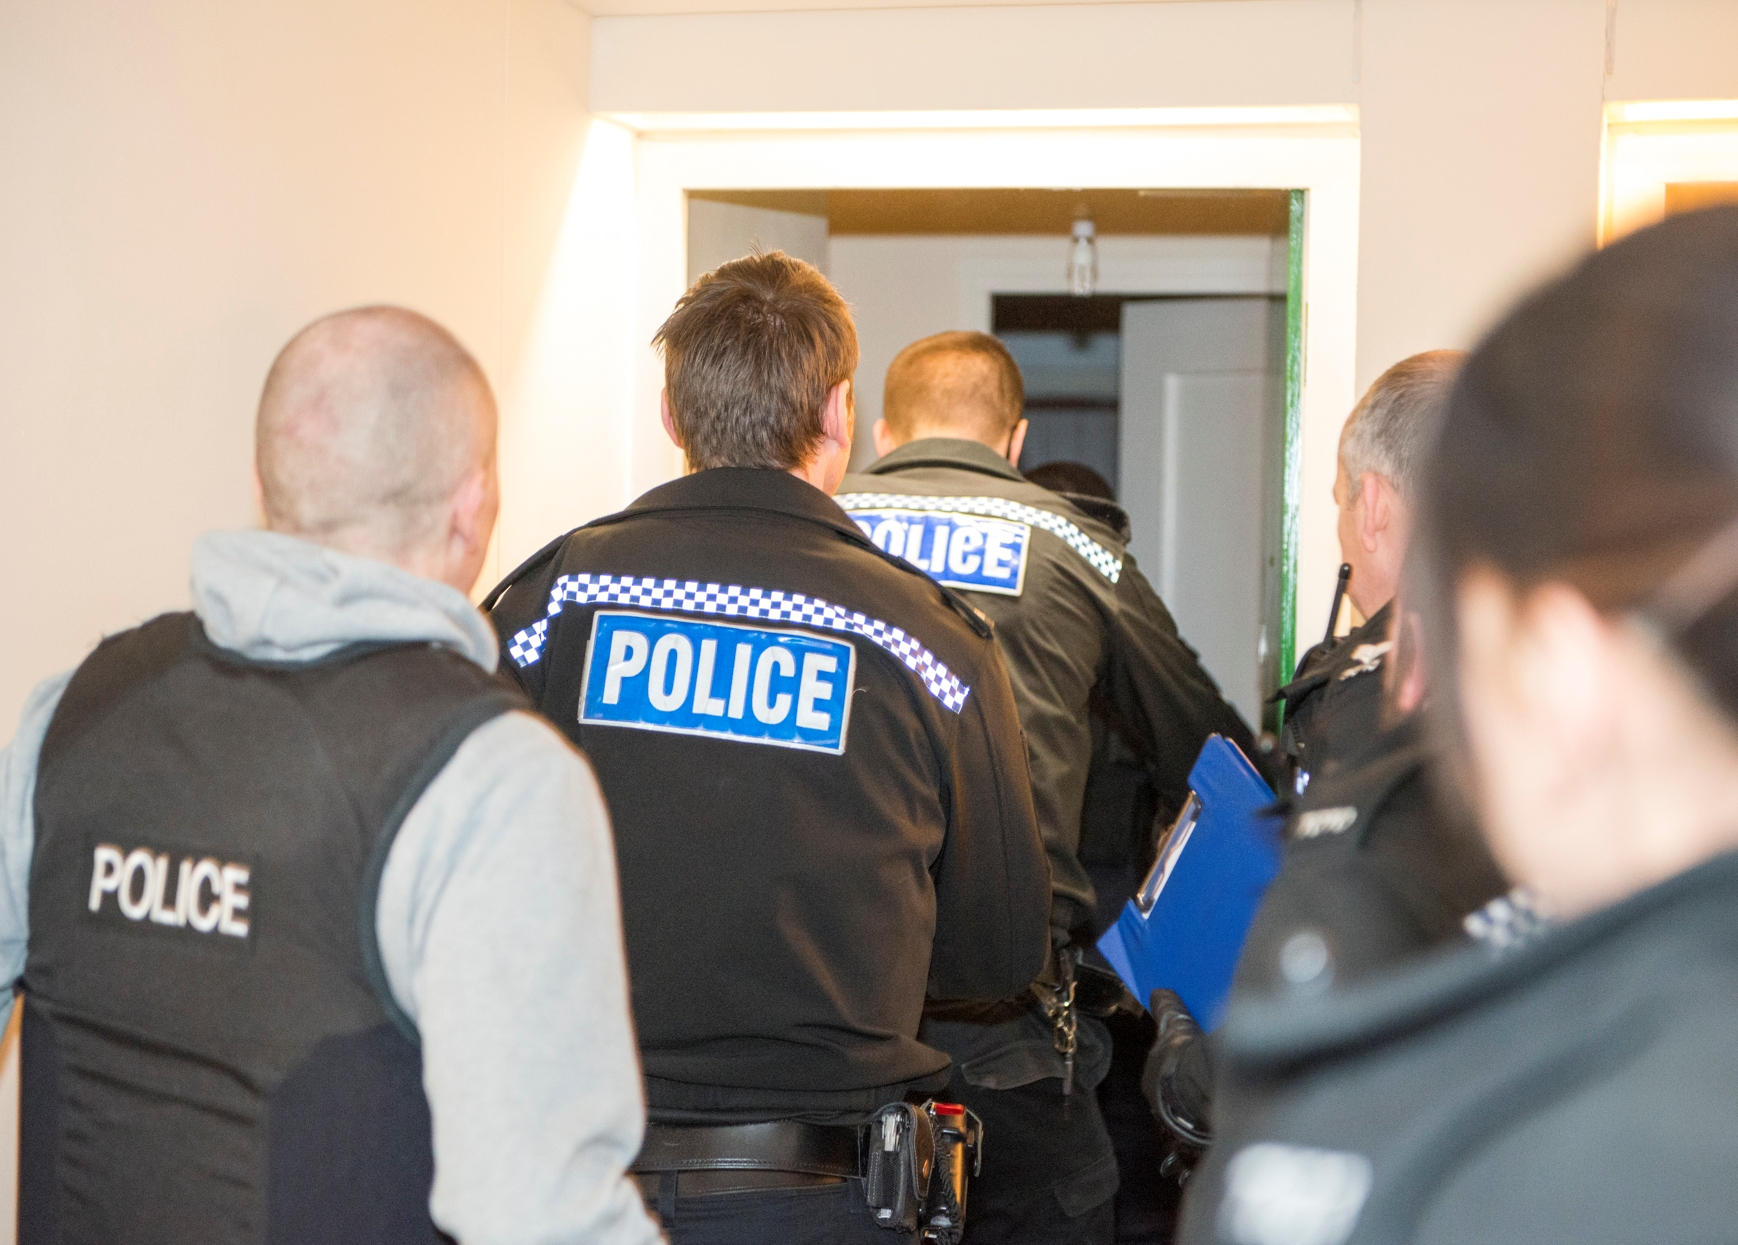 Police - Warrants executed